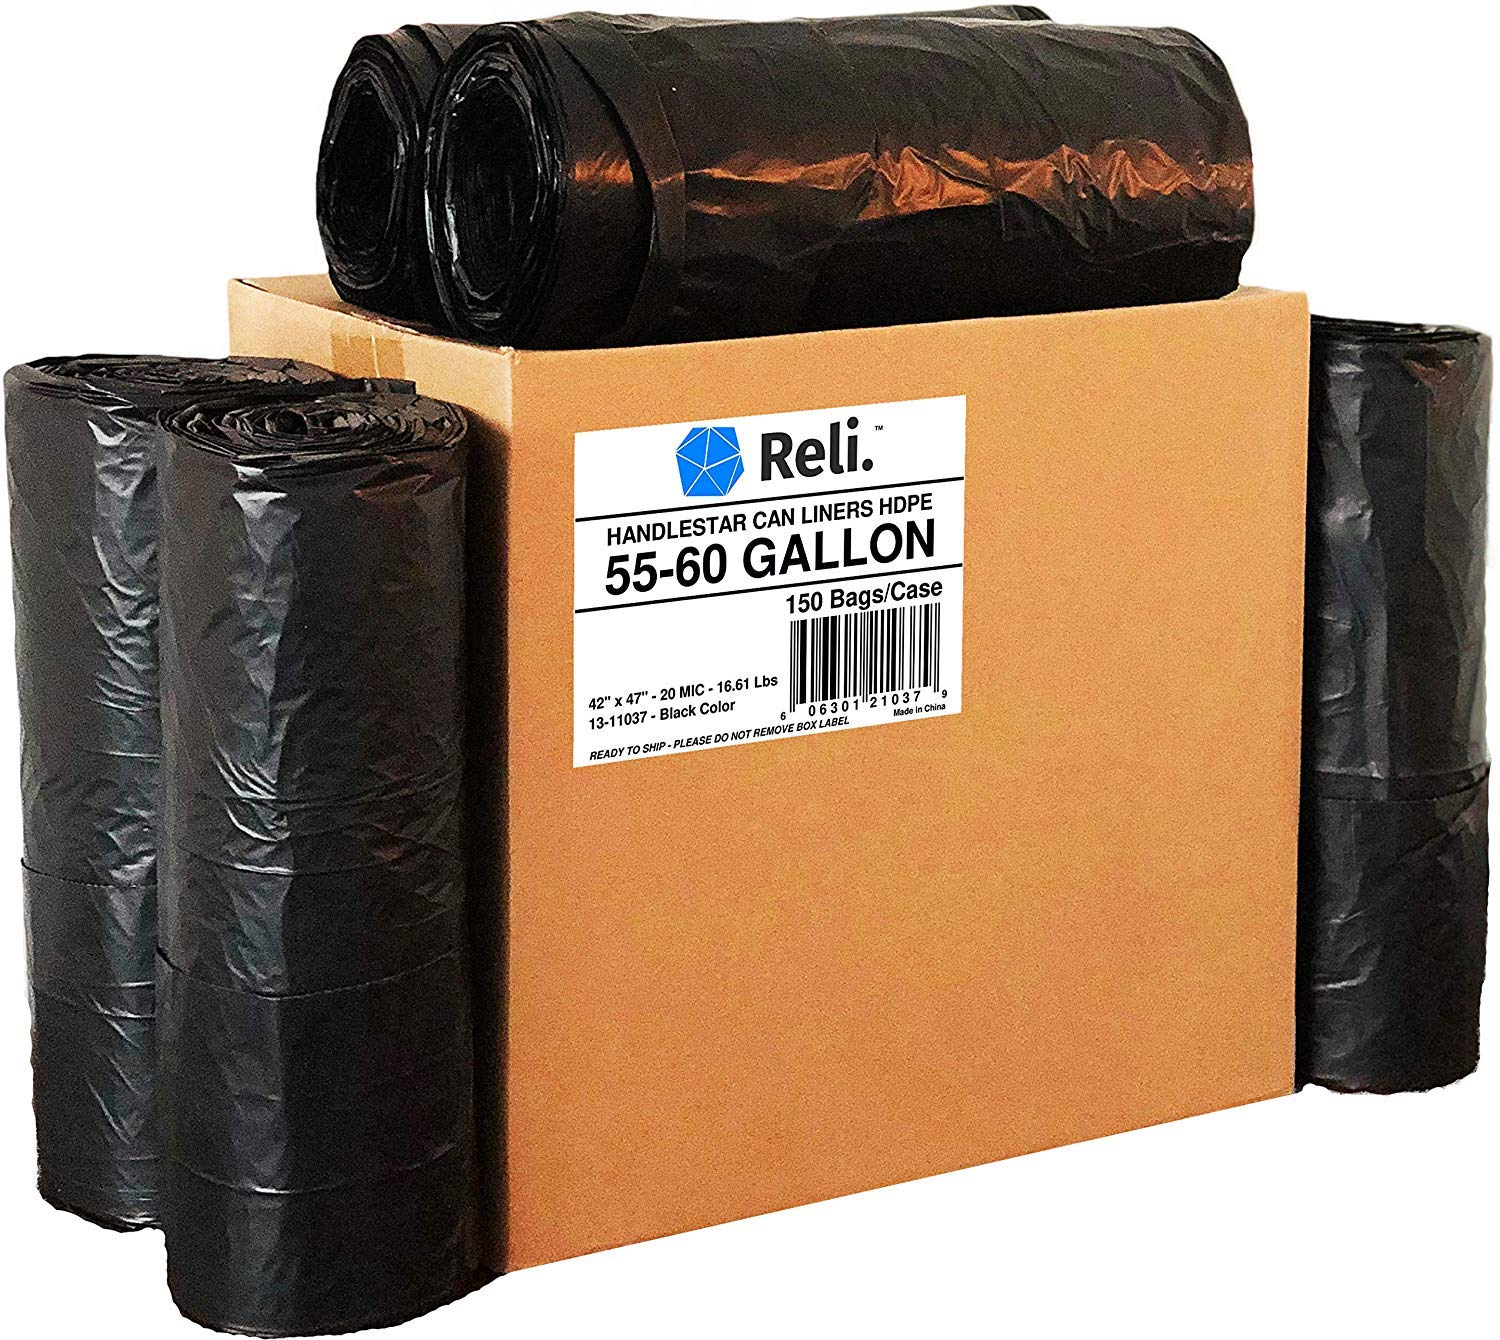 Reli. 55 Gallon Trash Bags with Handles (150 Count) - Black 55 Gallon Drum Liners, 50 Gallon - 55 Gallon Trash Bags Heavy Duty - 50 Gal, 55 Gal, 60 Gallon